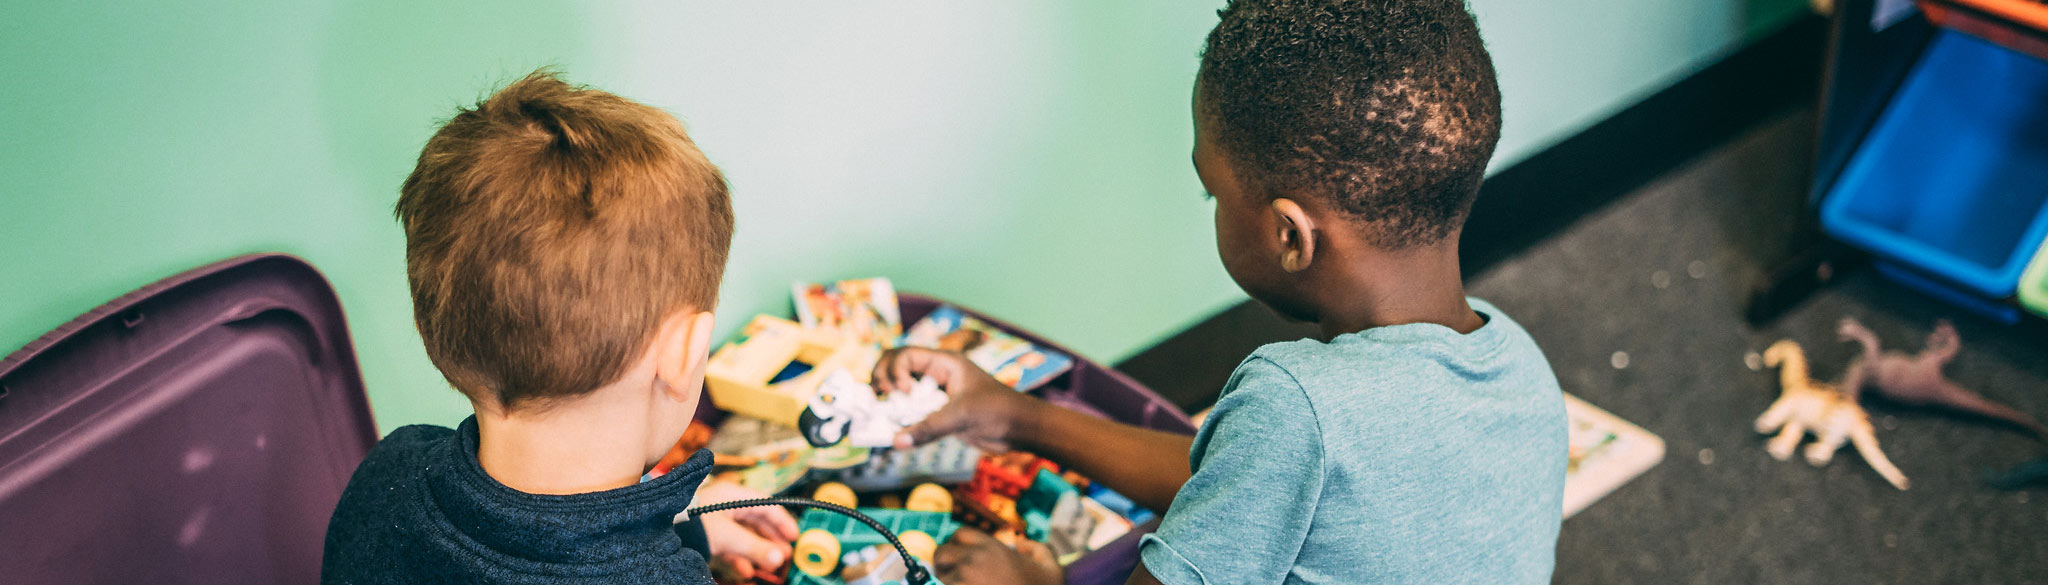 It Takes a Church to Raise a Family - Blog - Mercy Hill Church - Adoption - Foster Care Ministry